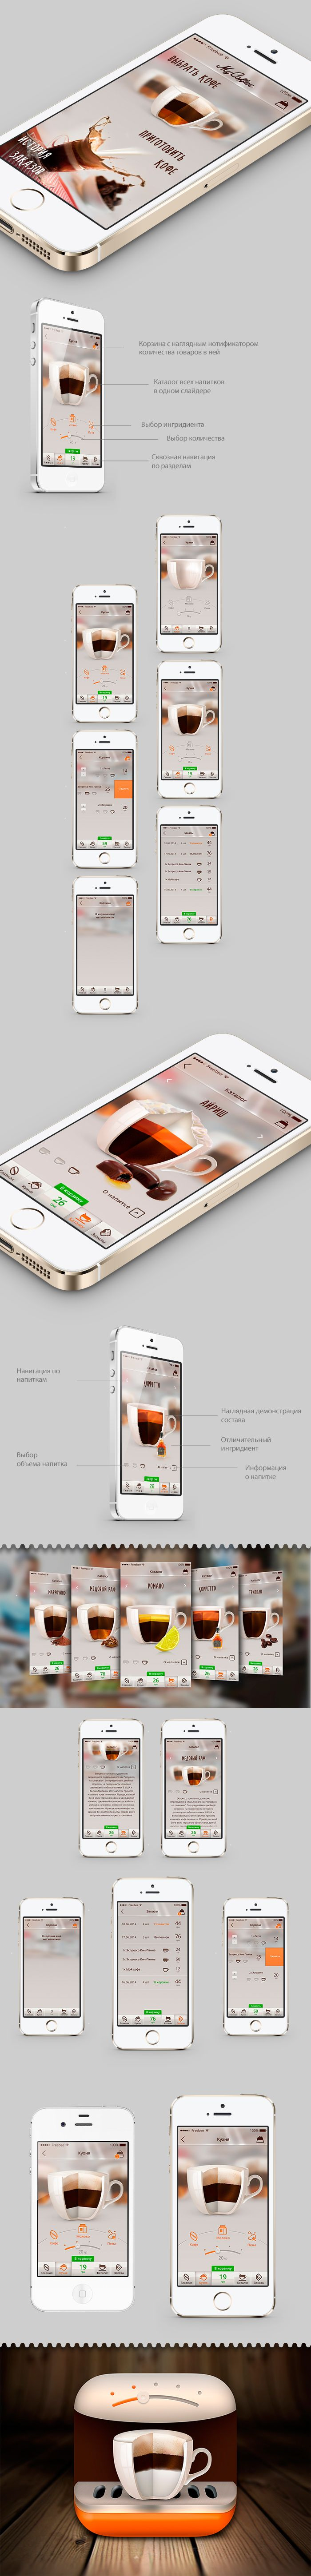 My Coffee on Behance